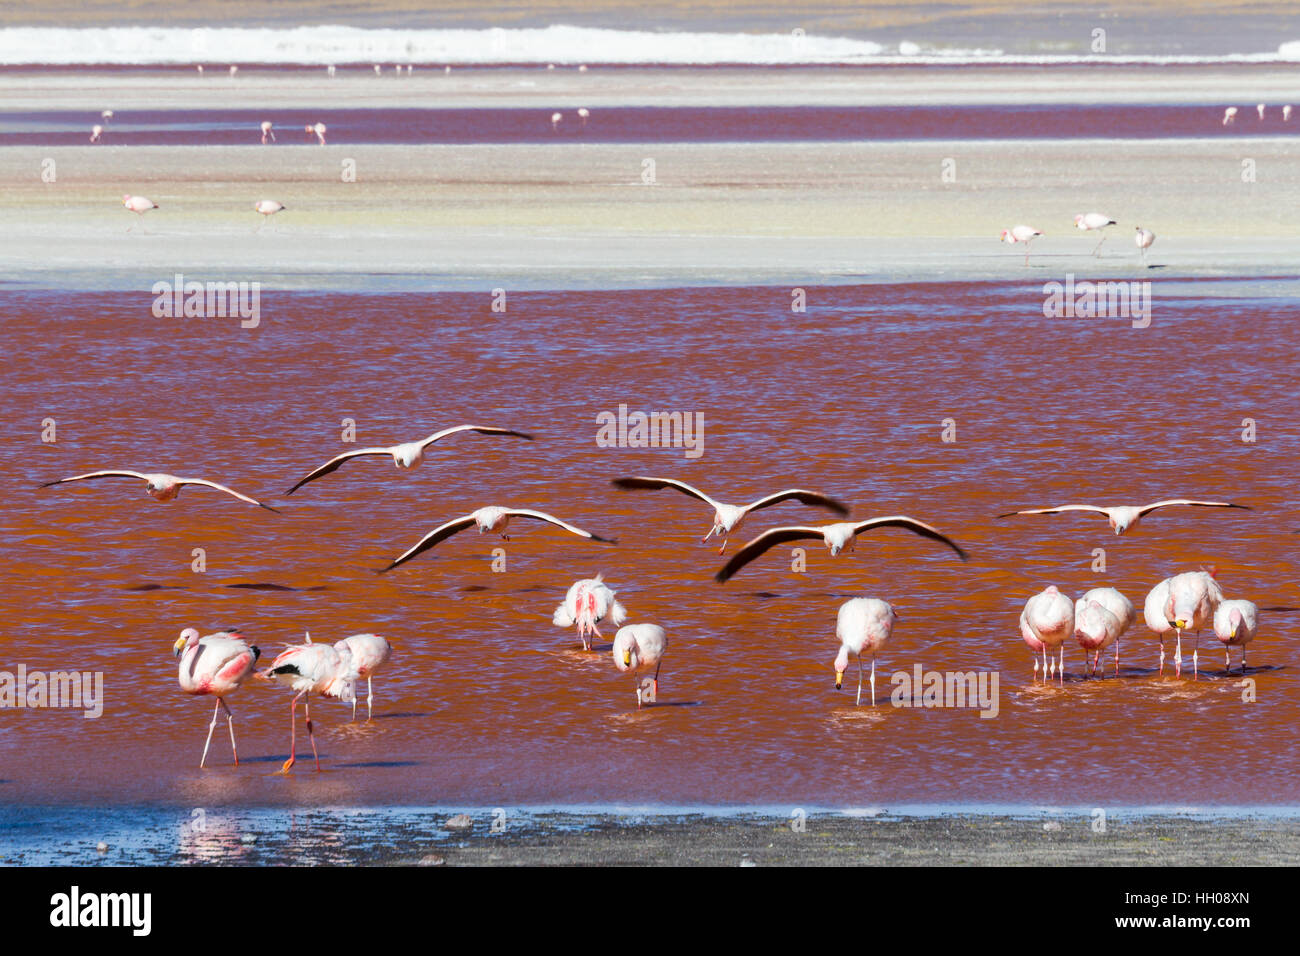 Flying flamingos at Laguna Colorada, Altiplano, Bolivia - Stock Image